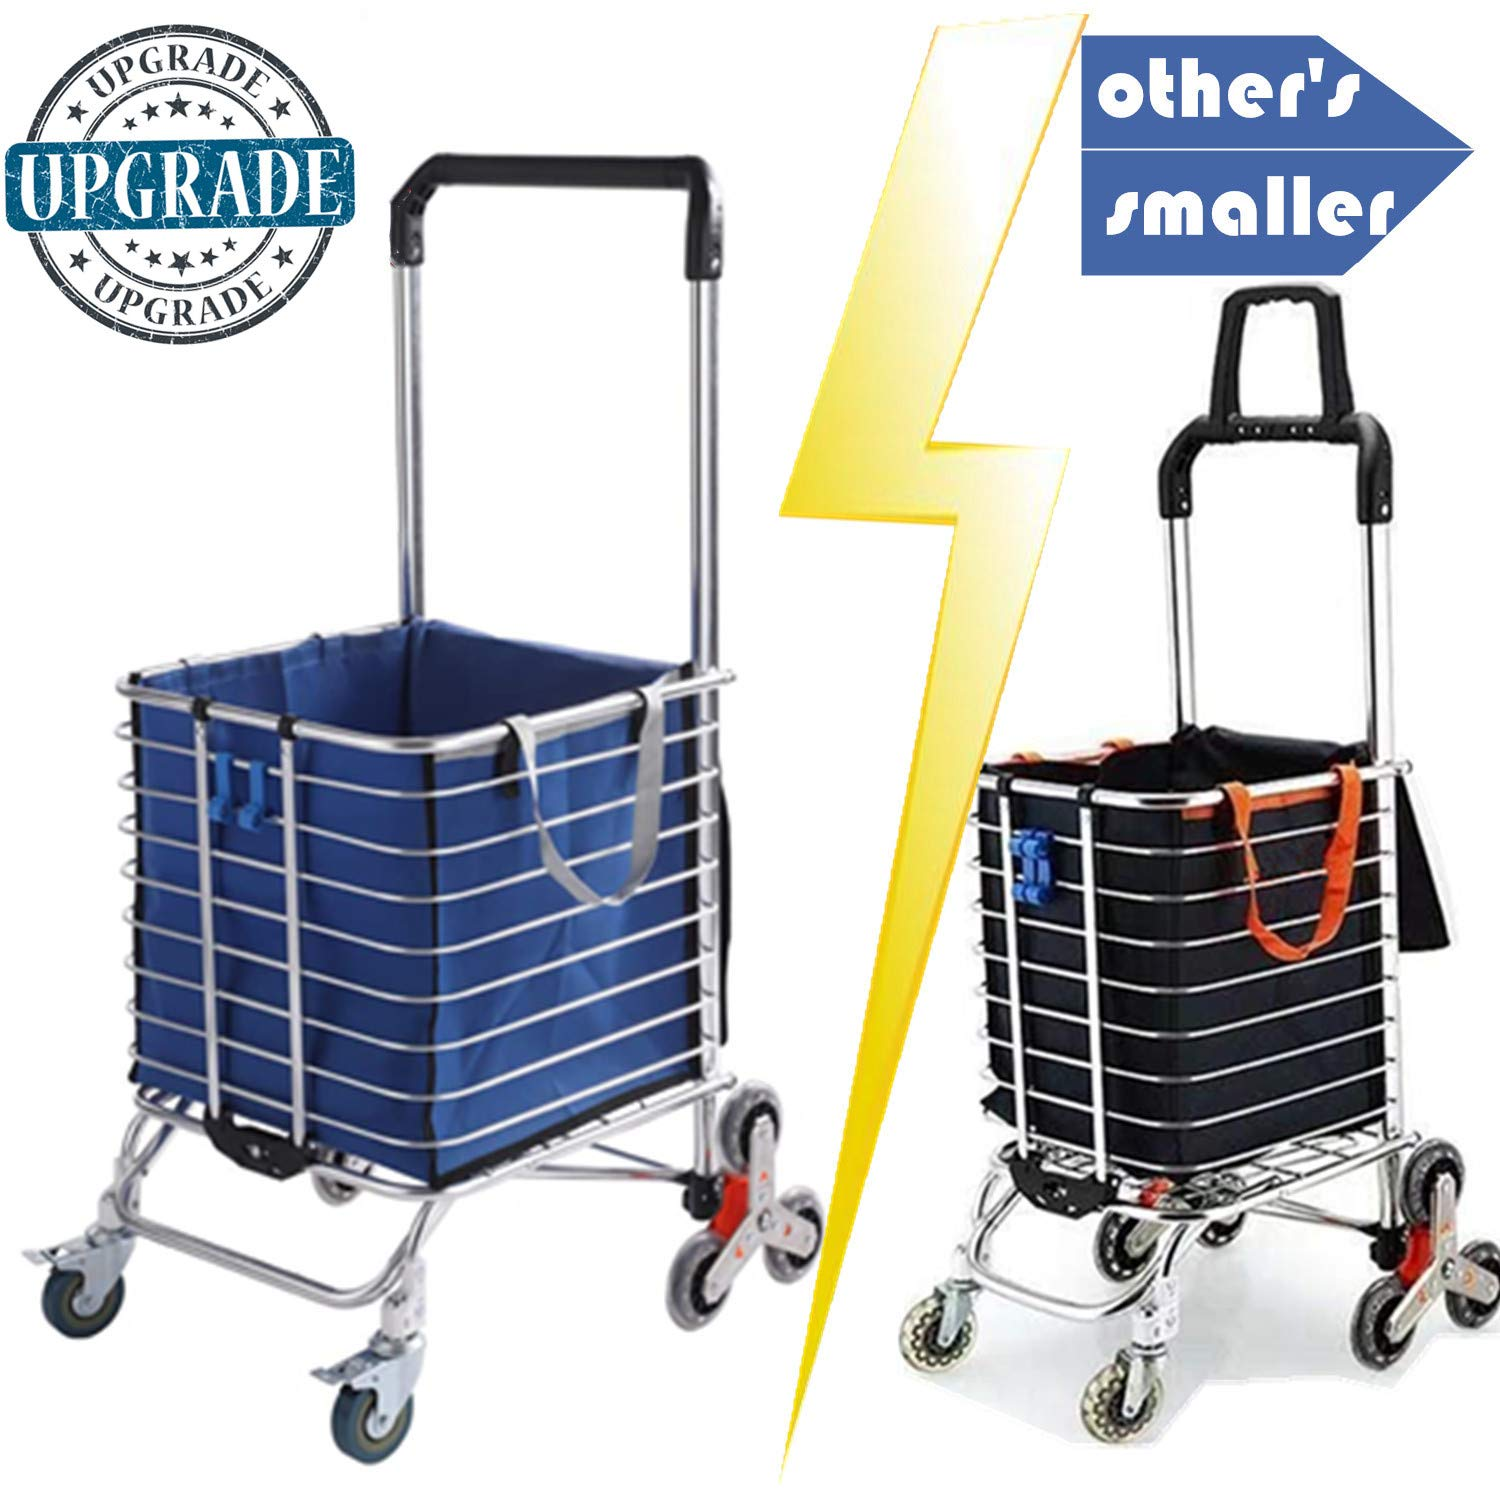 Foldable Shopping Cart Portable Grocery Cart Utility Lightweight Stair Climbing Cart with Rolling Swivel Wheels and Removable Waterproof Canvas Removable Bag (Blue)